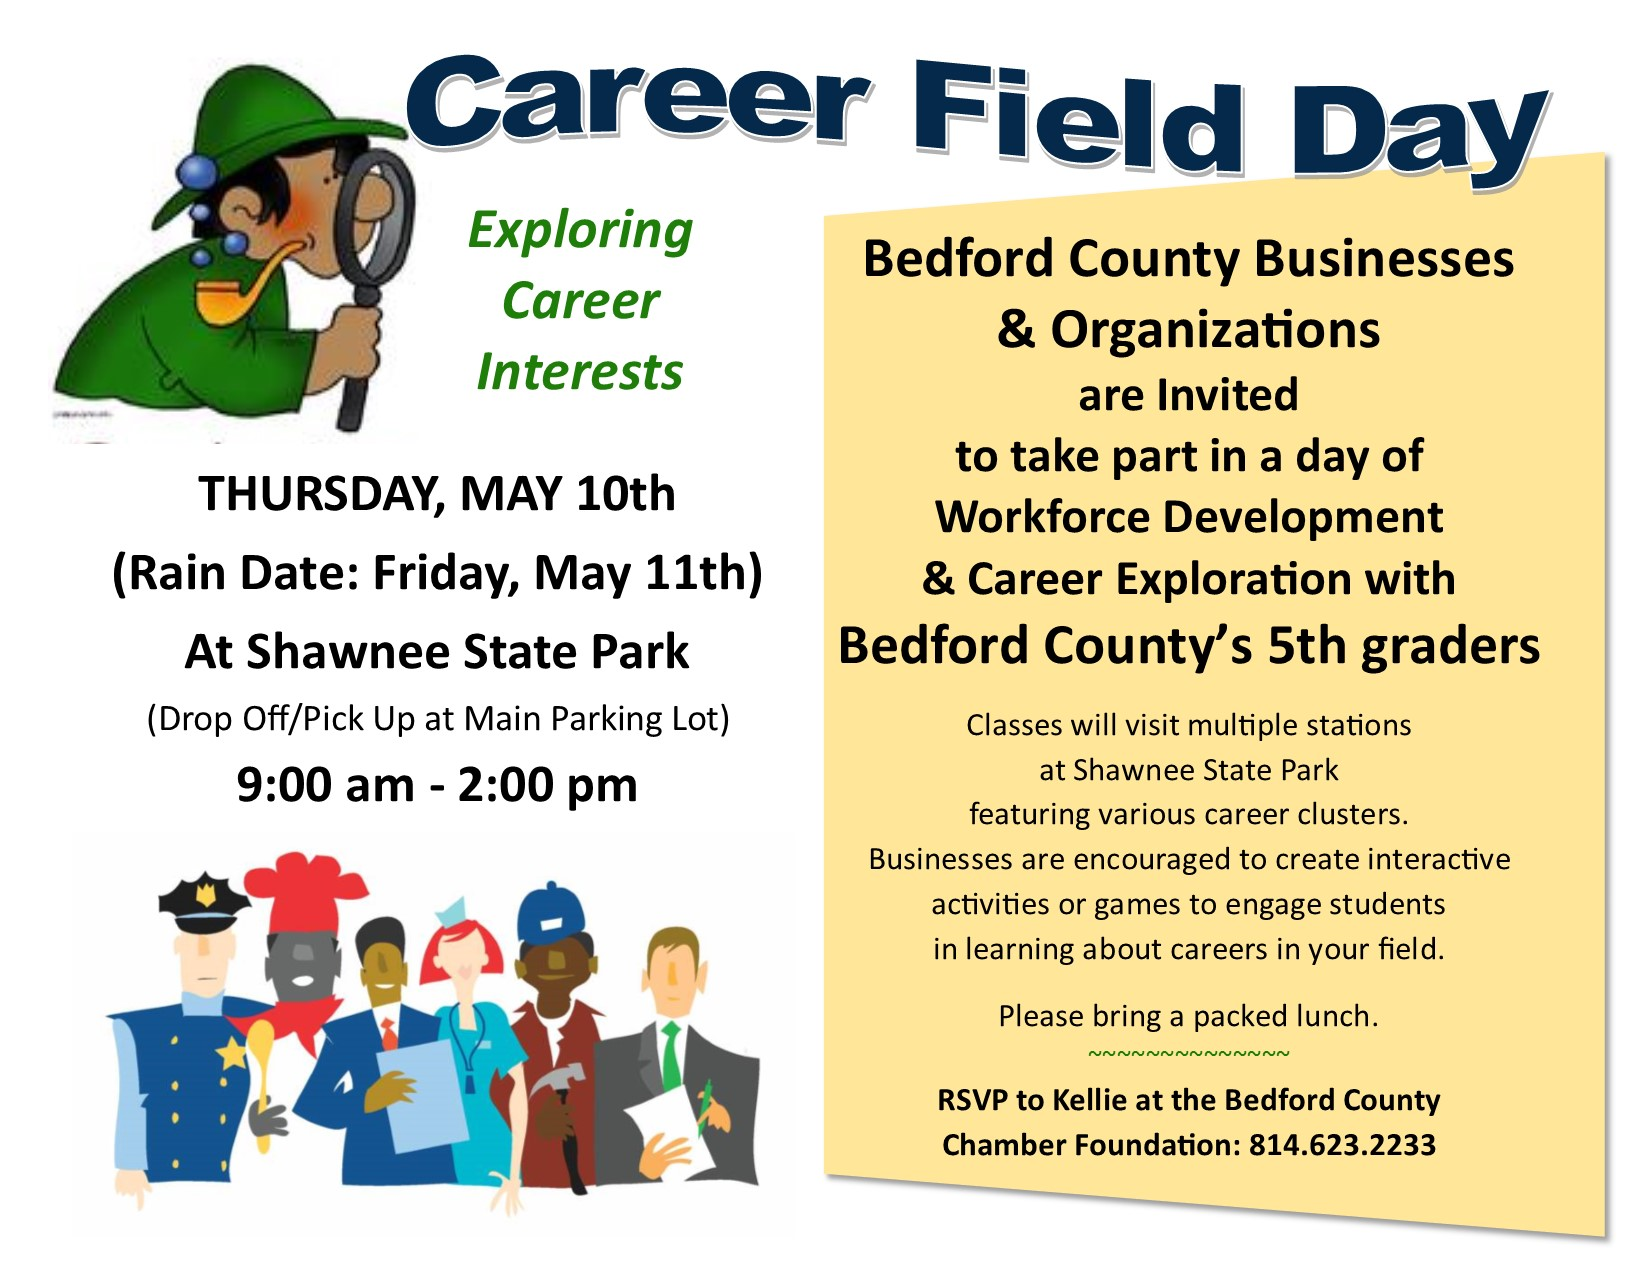 career field day business flier